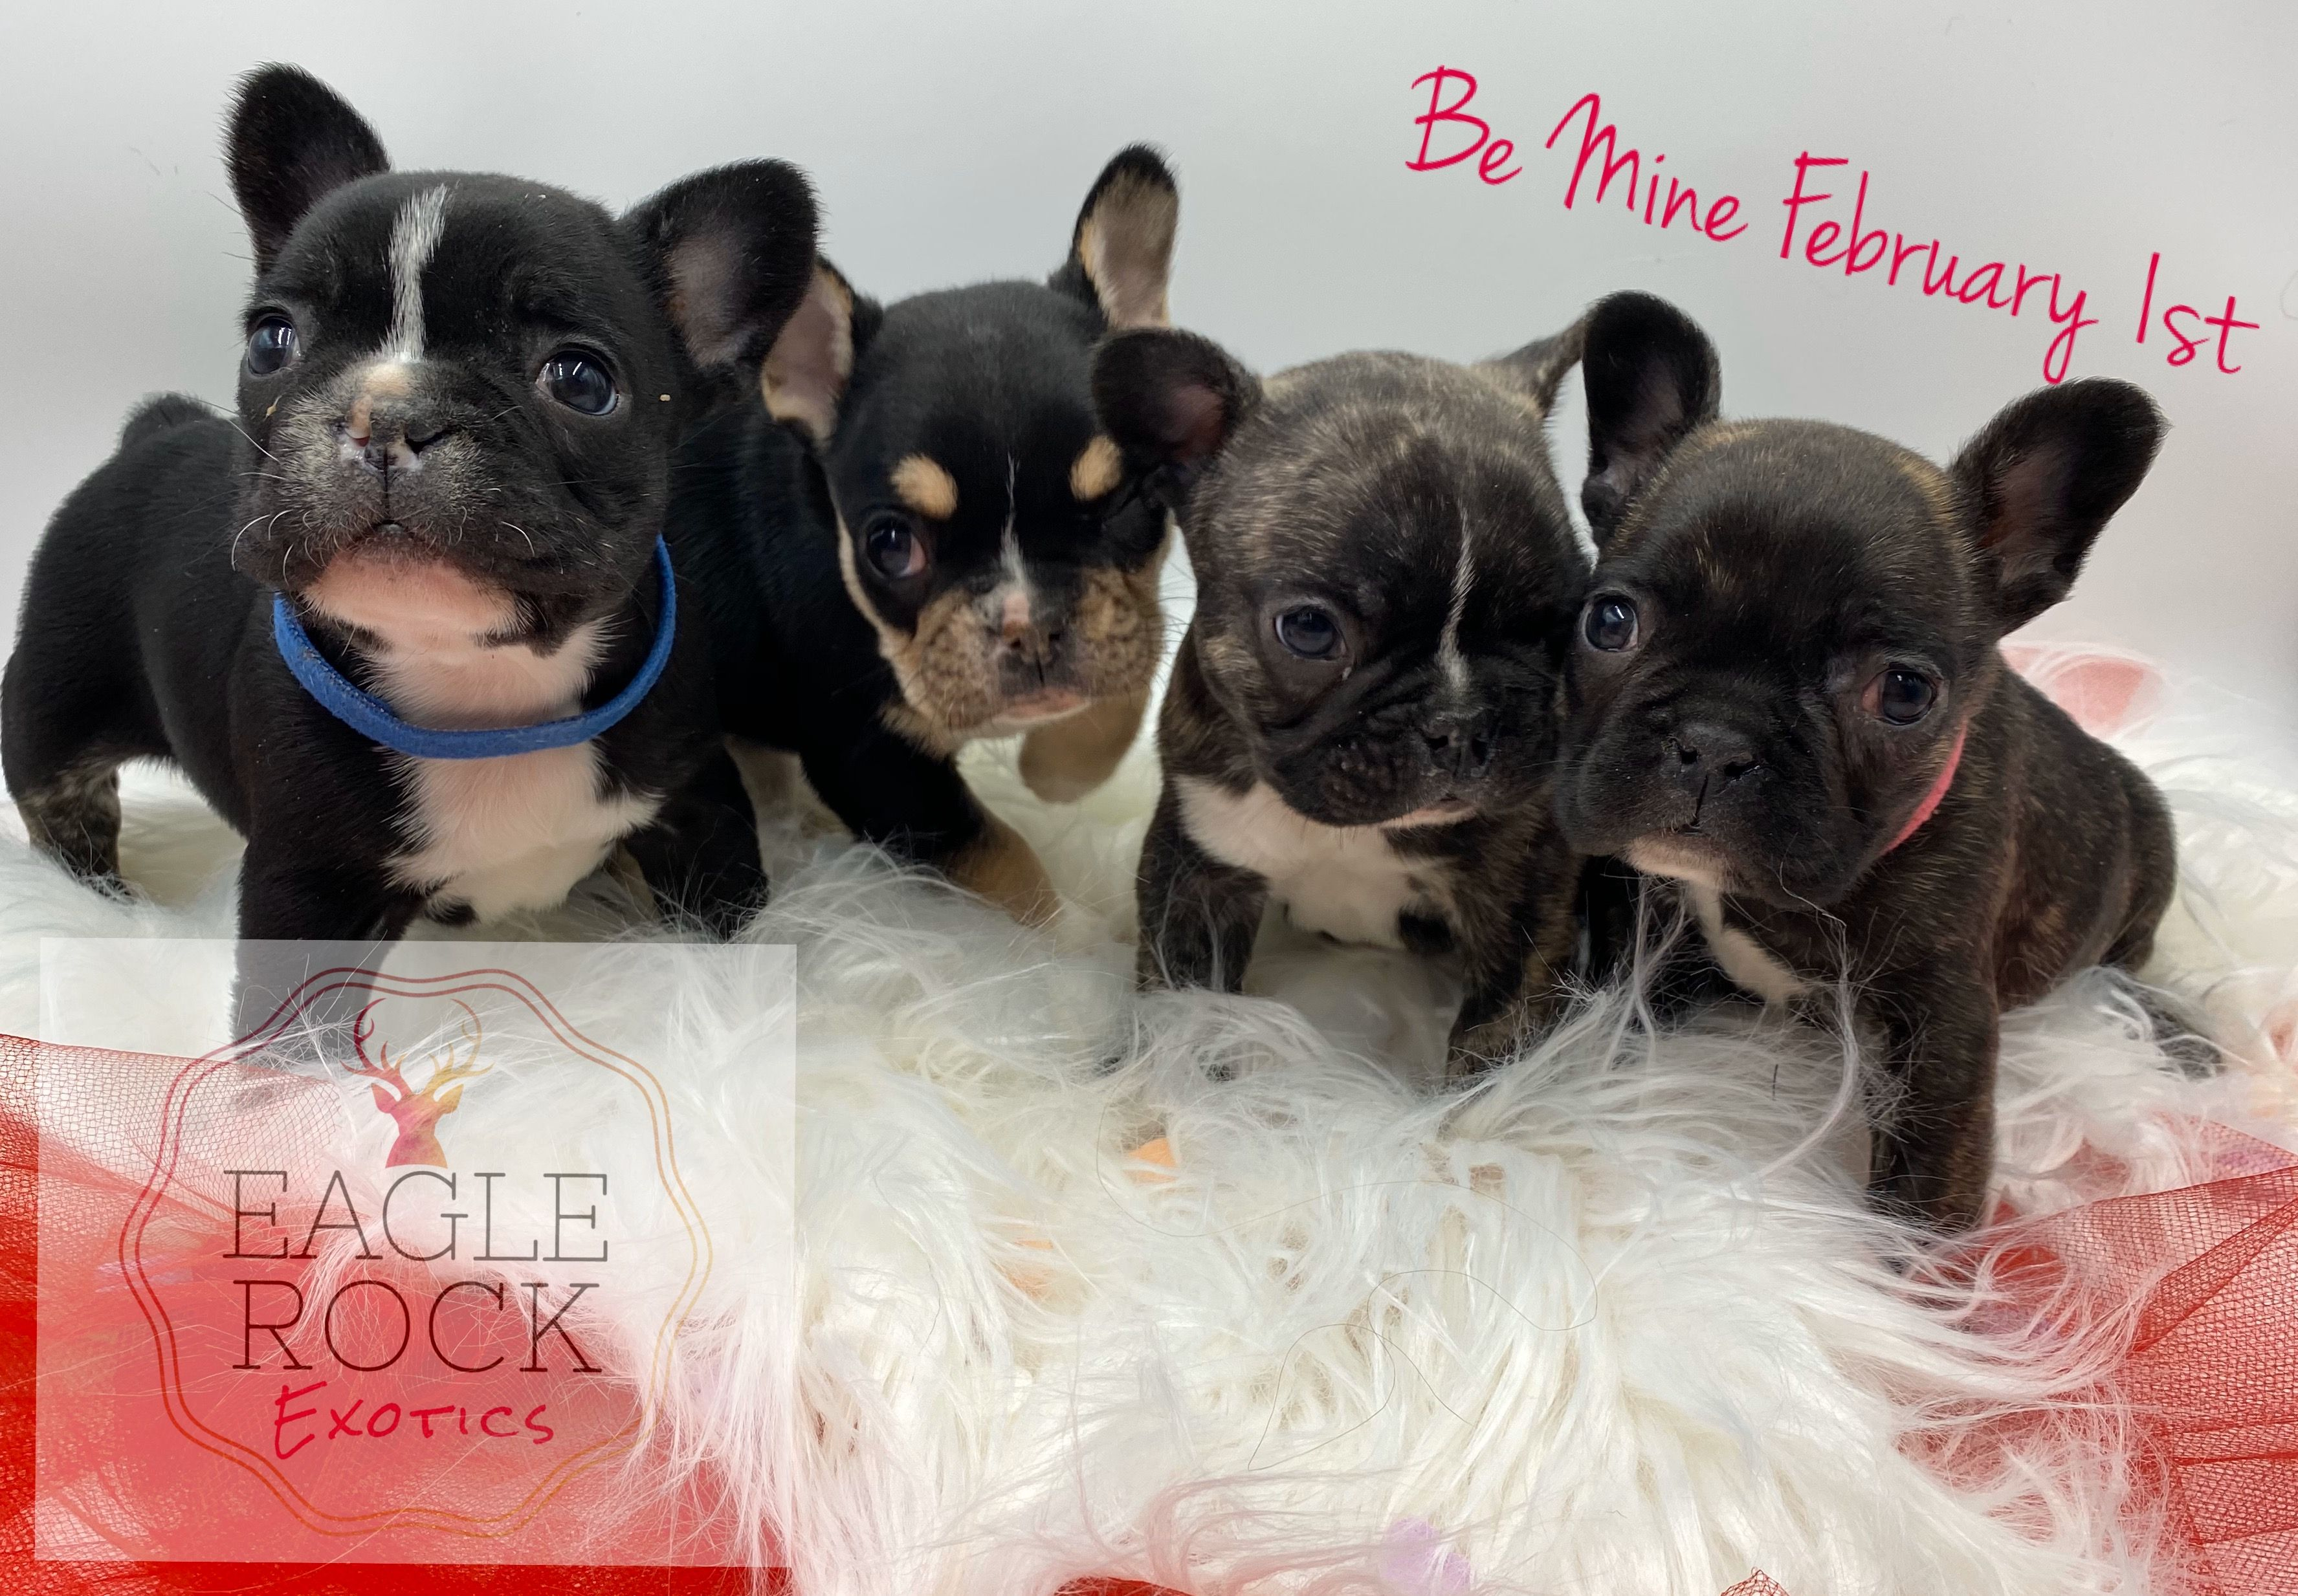 Akc Eagle Rock Exotics Cartier French Bulldog Puppies Puppies